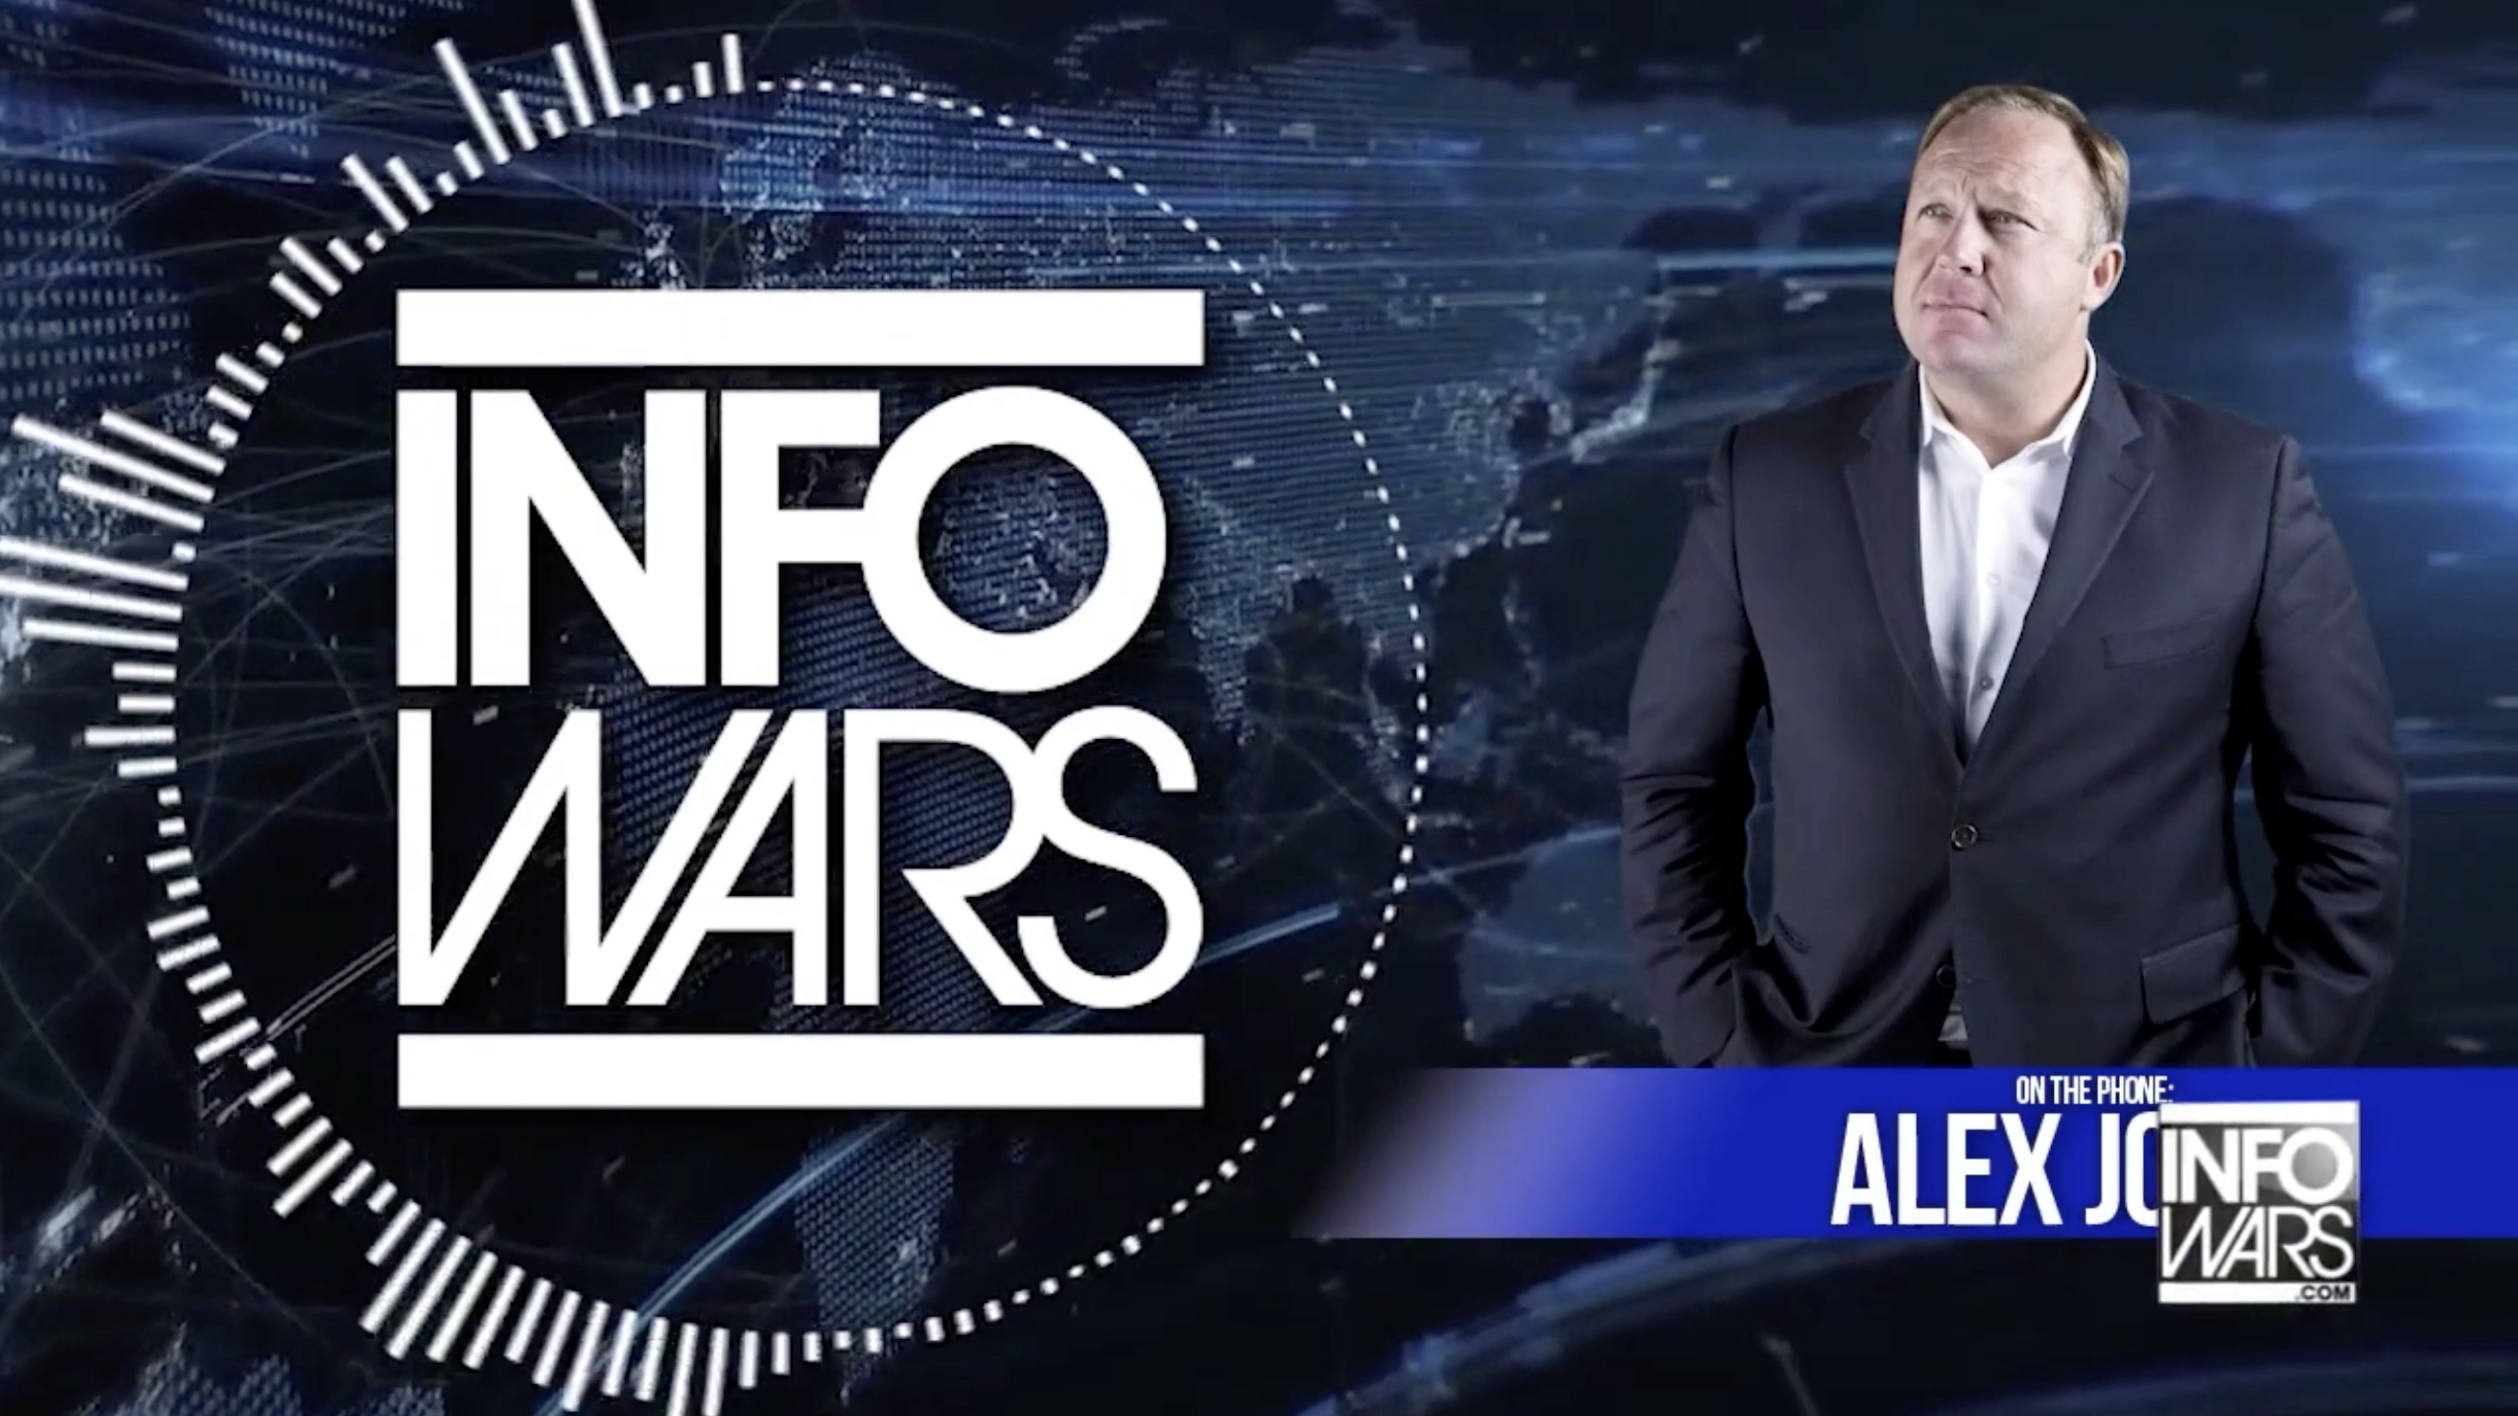 Alex Jones On The Phone Infowars Banned Dot Video EXZM July 23rd 2020